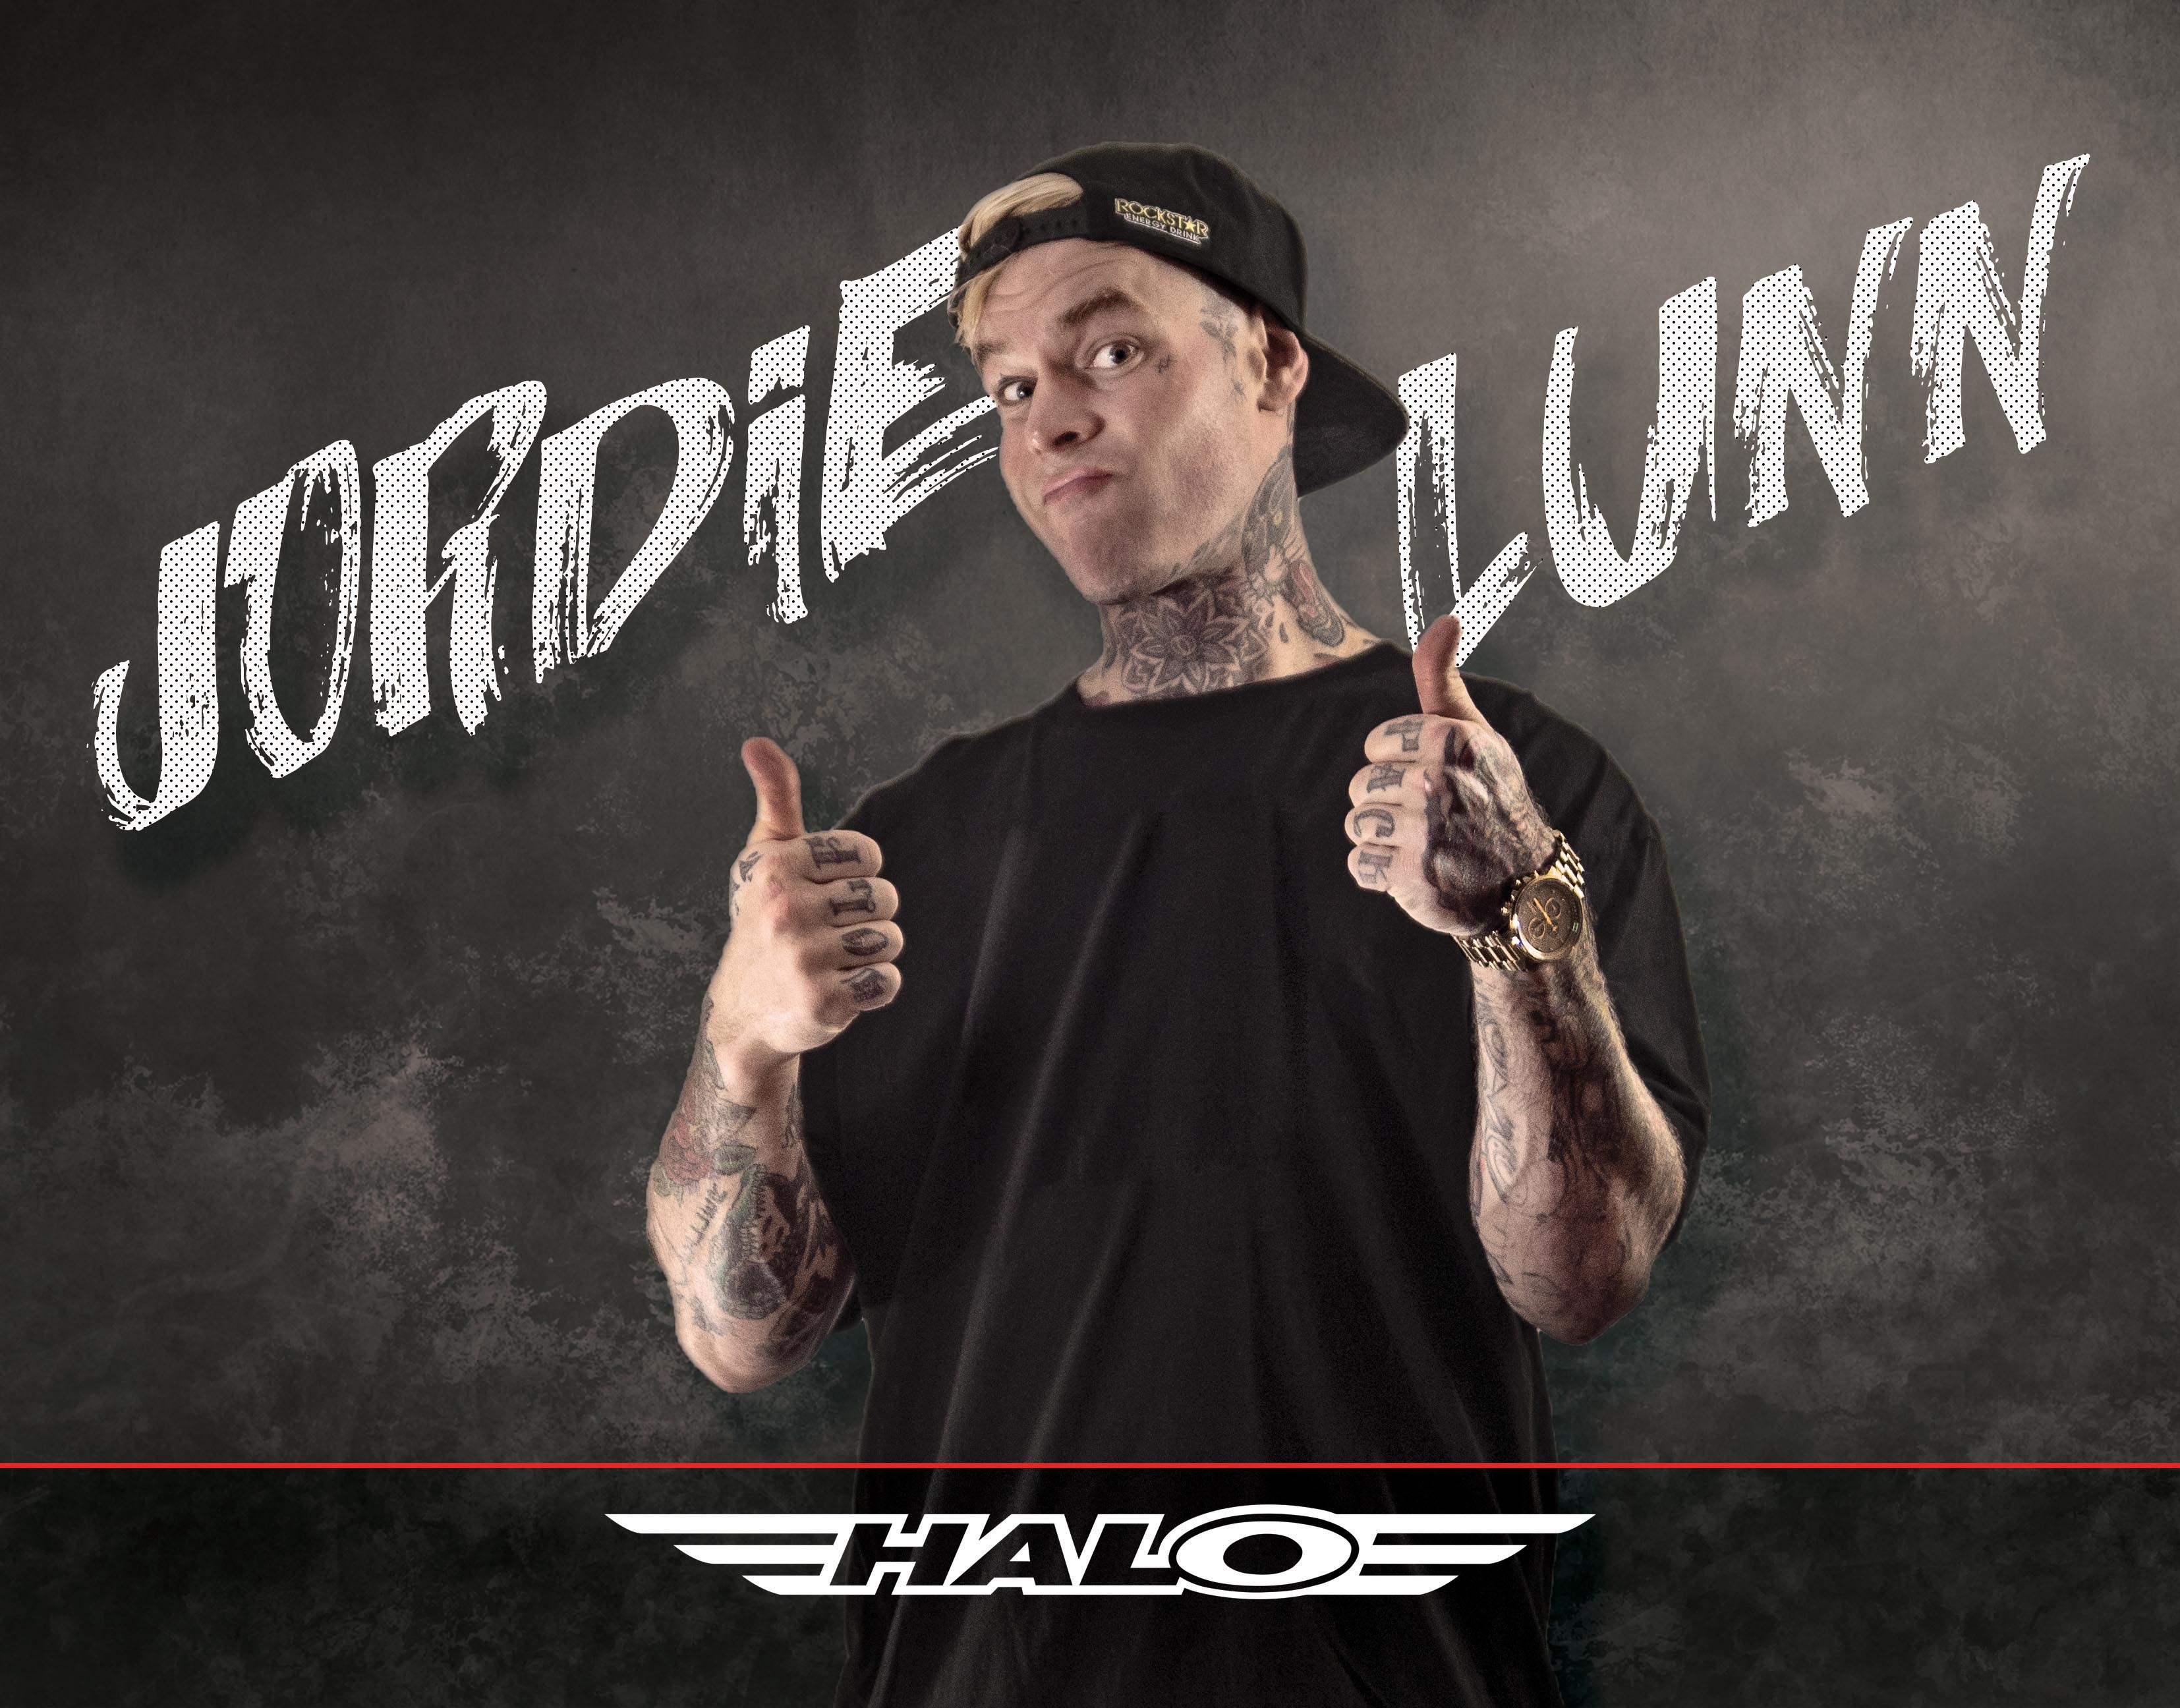 Jordie Lunn now sponsored by Halo!